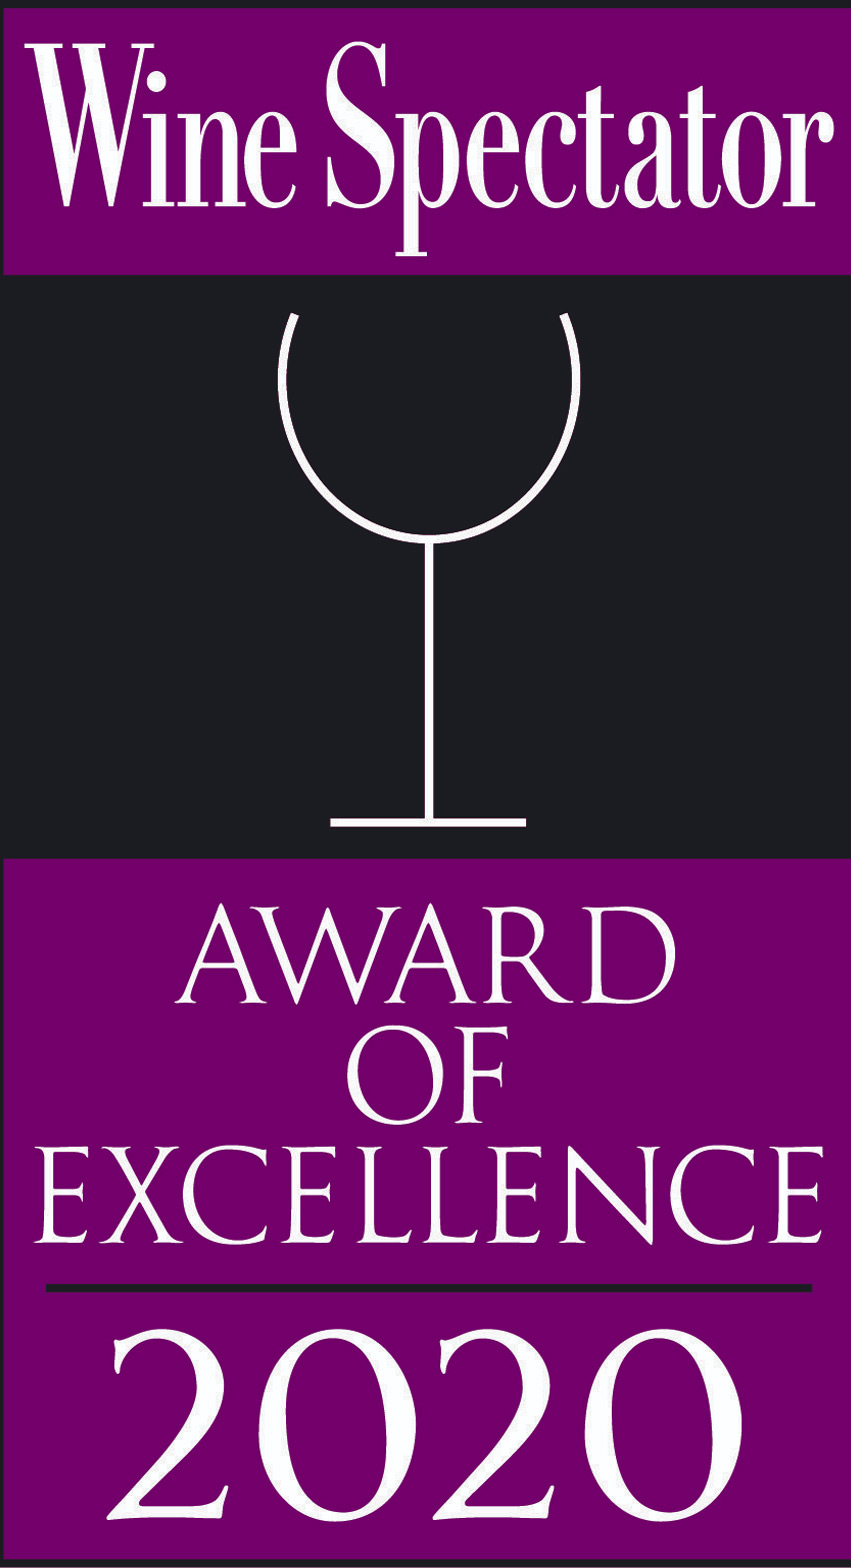 Twenty Eight Wine Spectator Award 2020